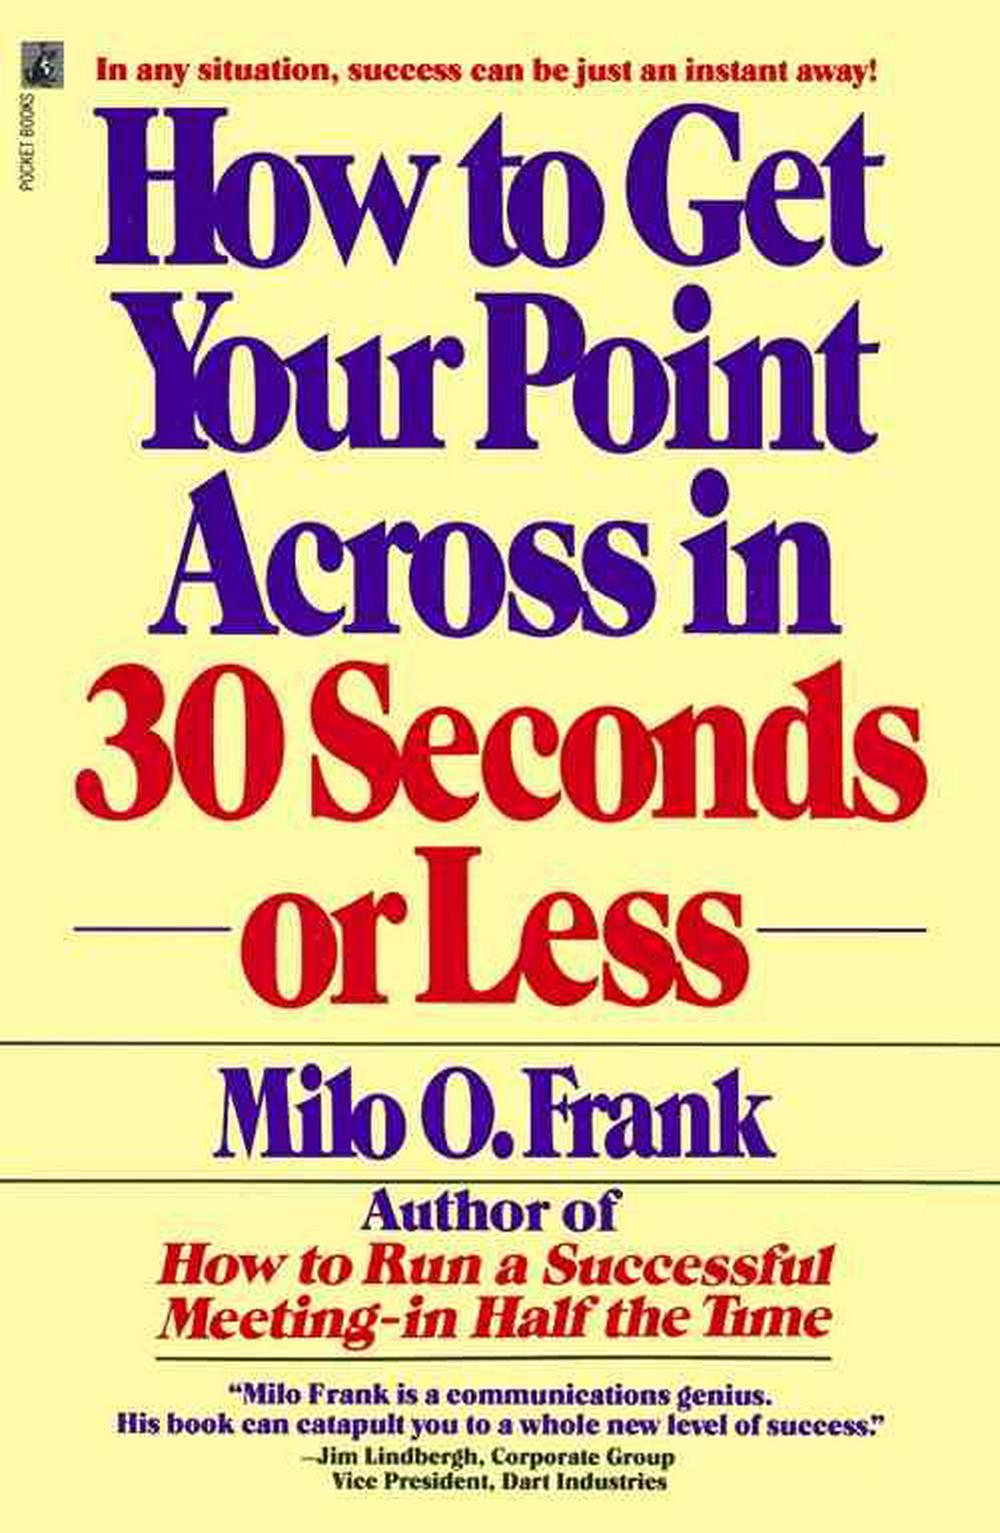 How to Get Your Point across in 30 Seconds or Less by Milo O. Frank, ISBN: 9780671727529